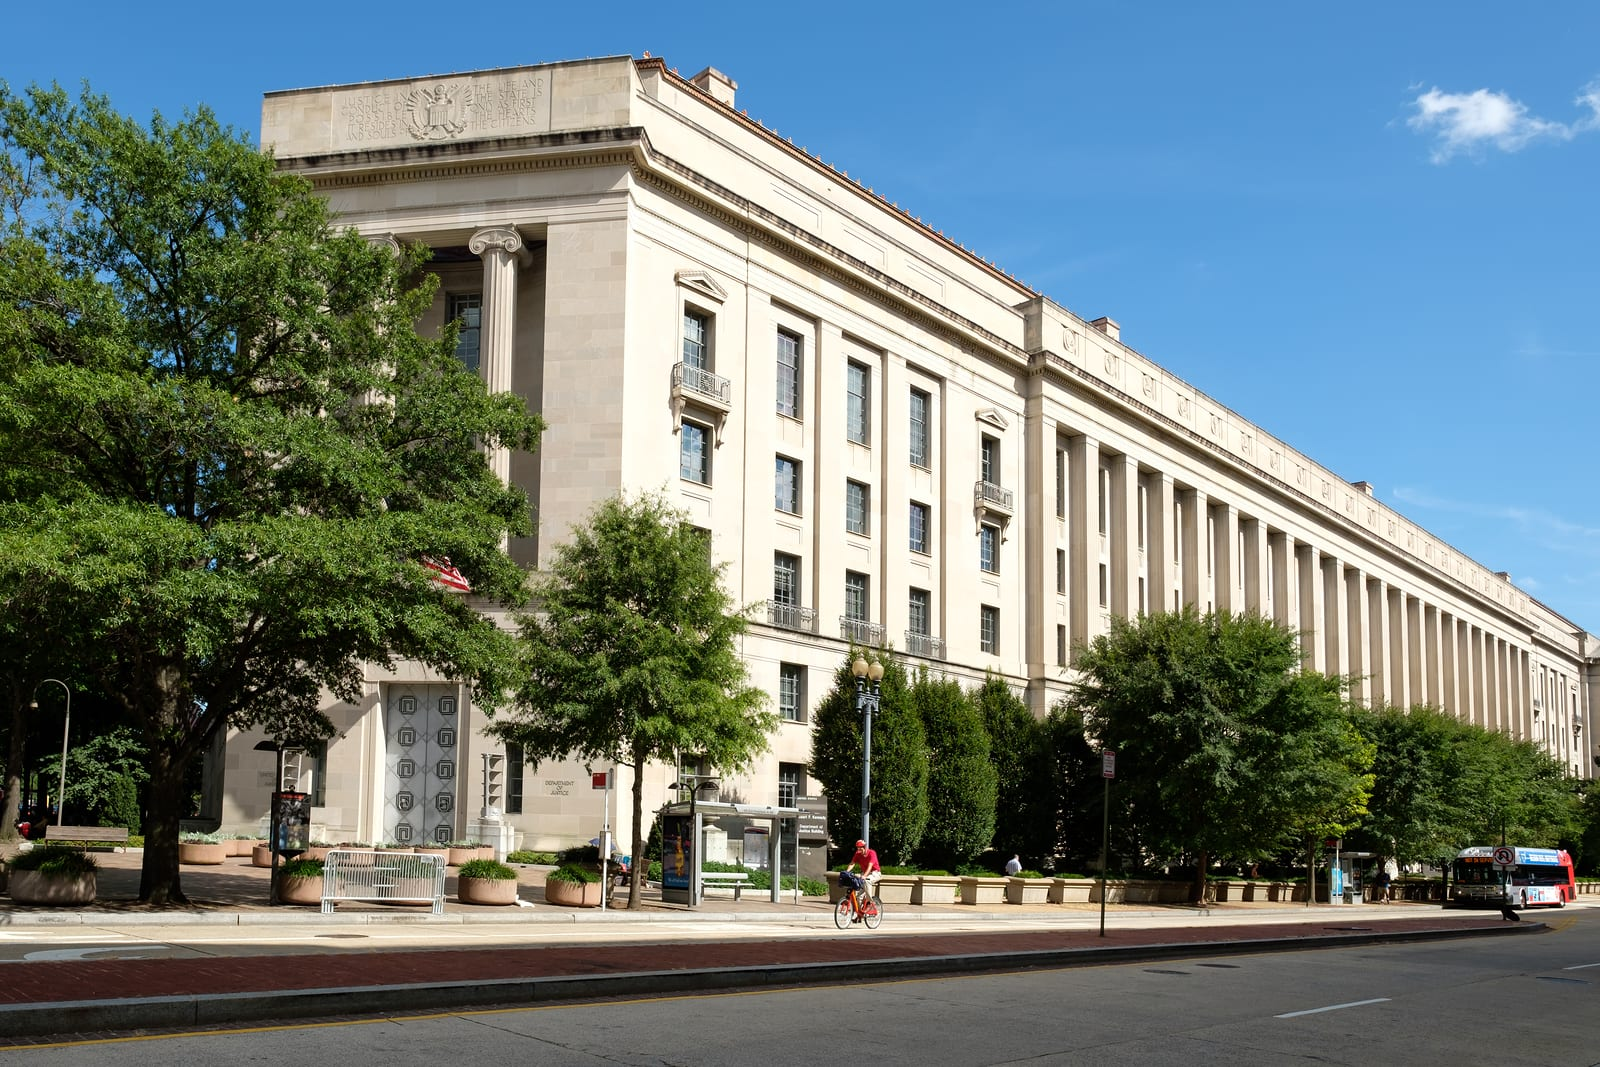 Texas News: Federal Prison Employee, Tanya L. Richard Sentenced for Defrauding Inmate Families